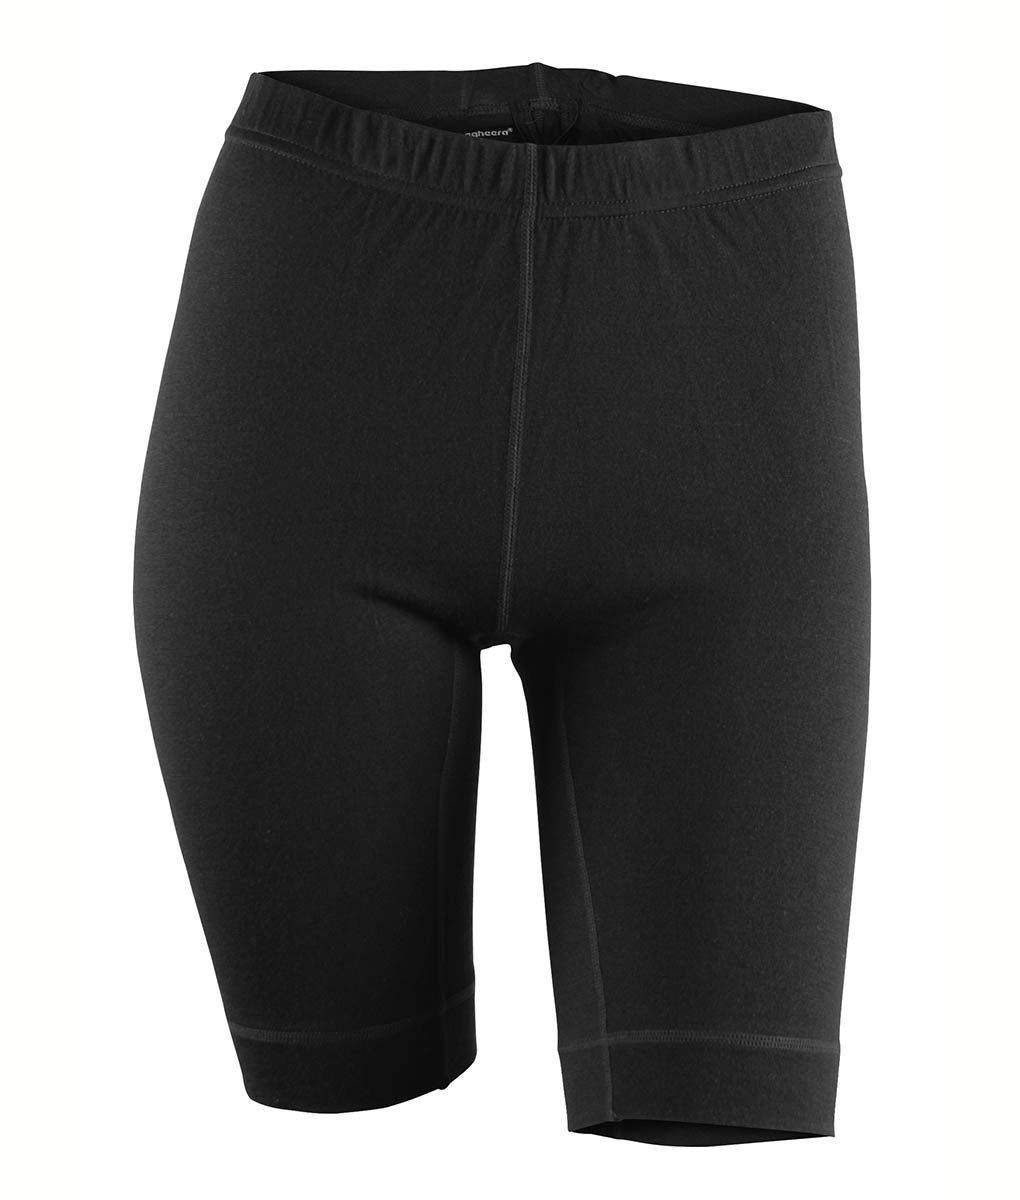 Merino-pants-short-W_black